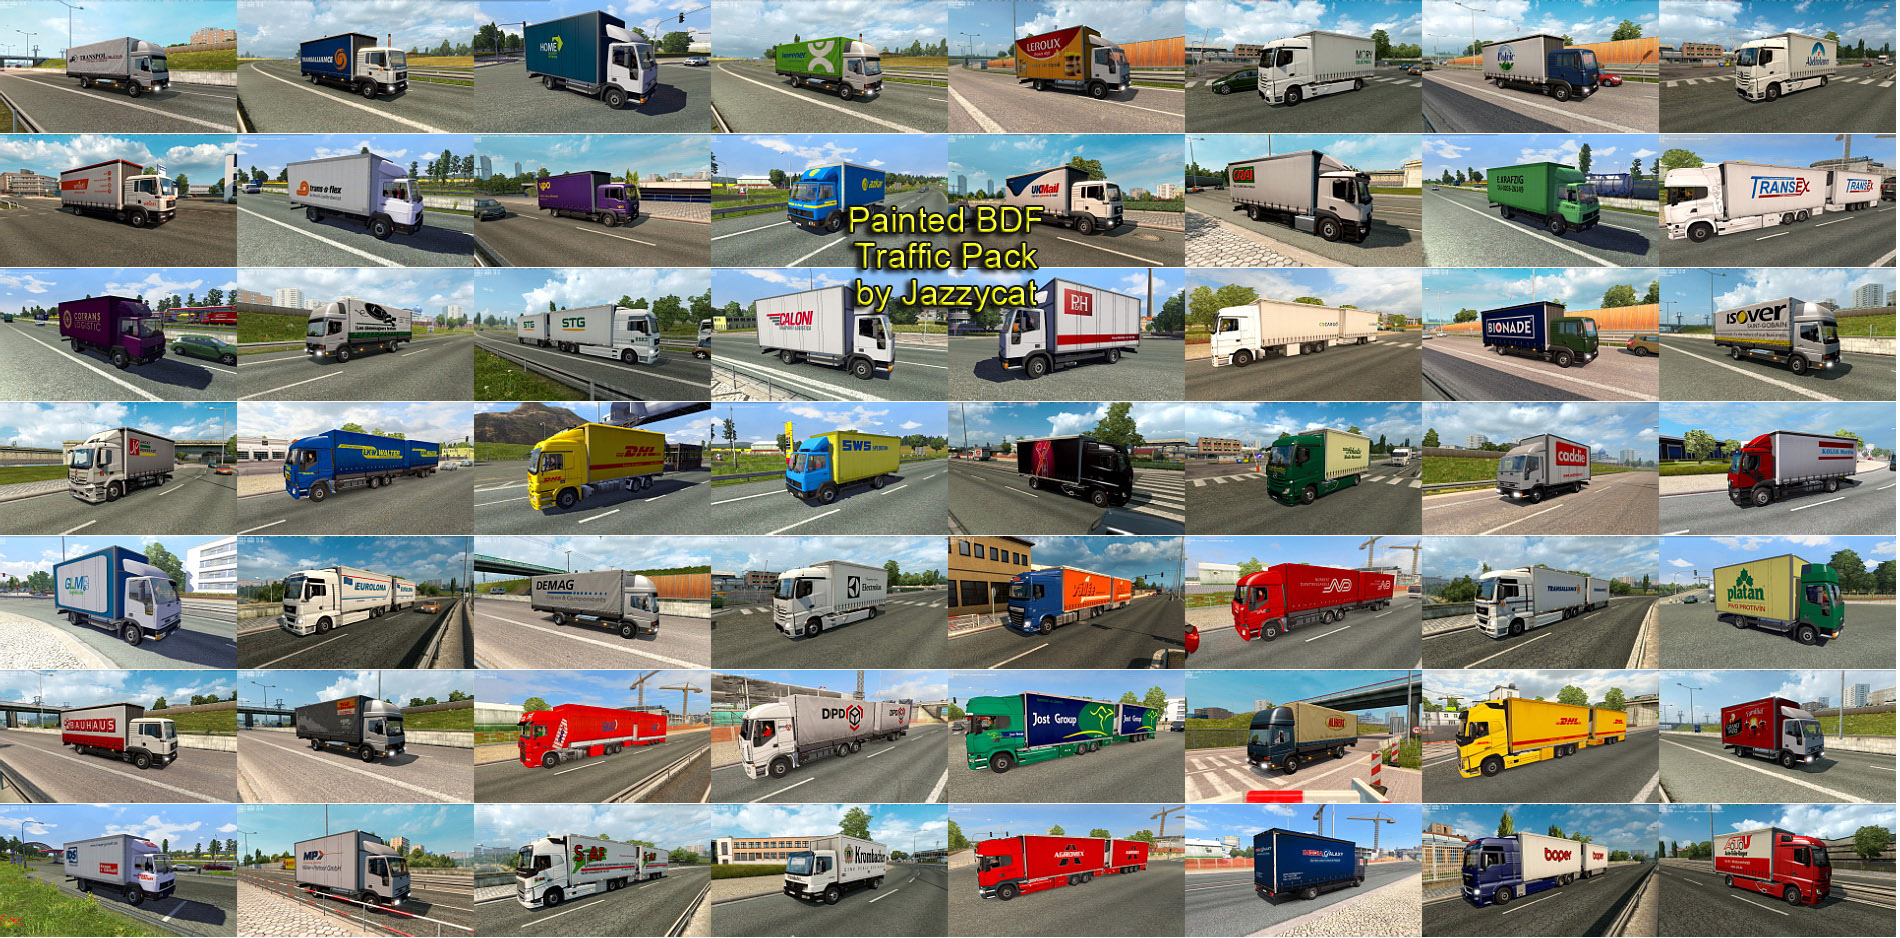 Painted BDF Traffic Pack v2.6 by Jazzycat